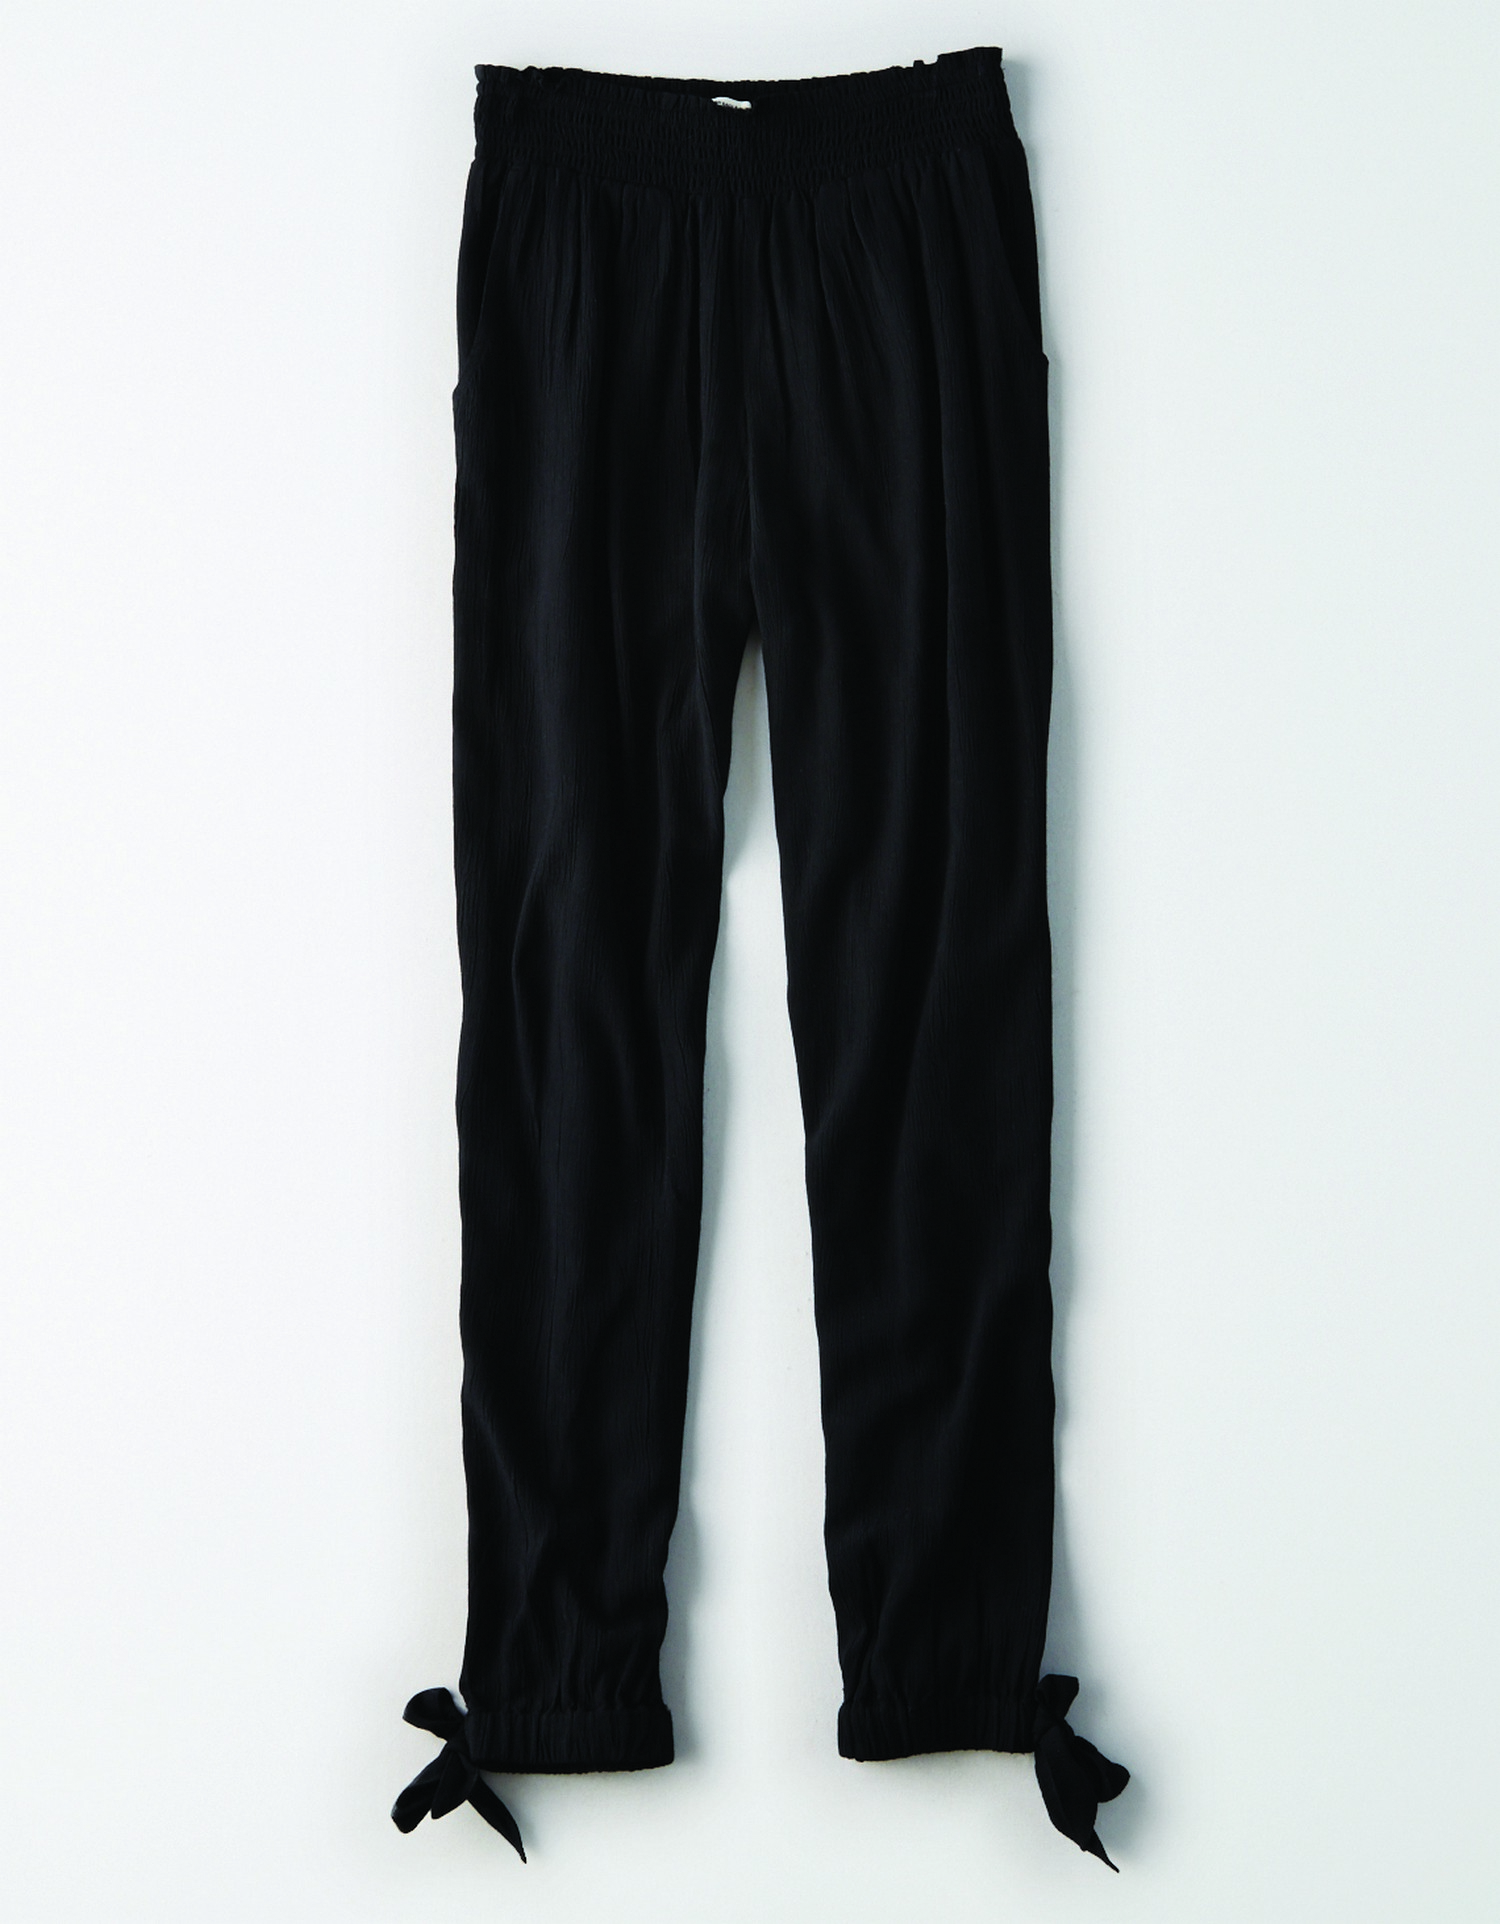 AE - INTL - Apparel - W - Jogger Pant - True Black - Solid Color - ties on ankles - light flow fabric KS